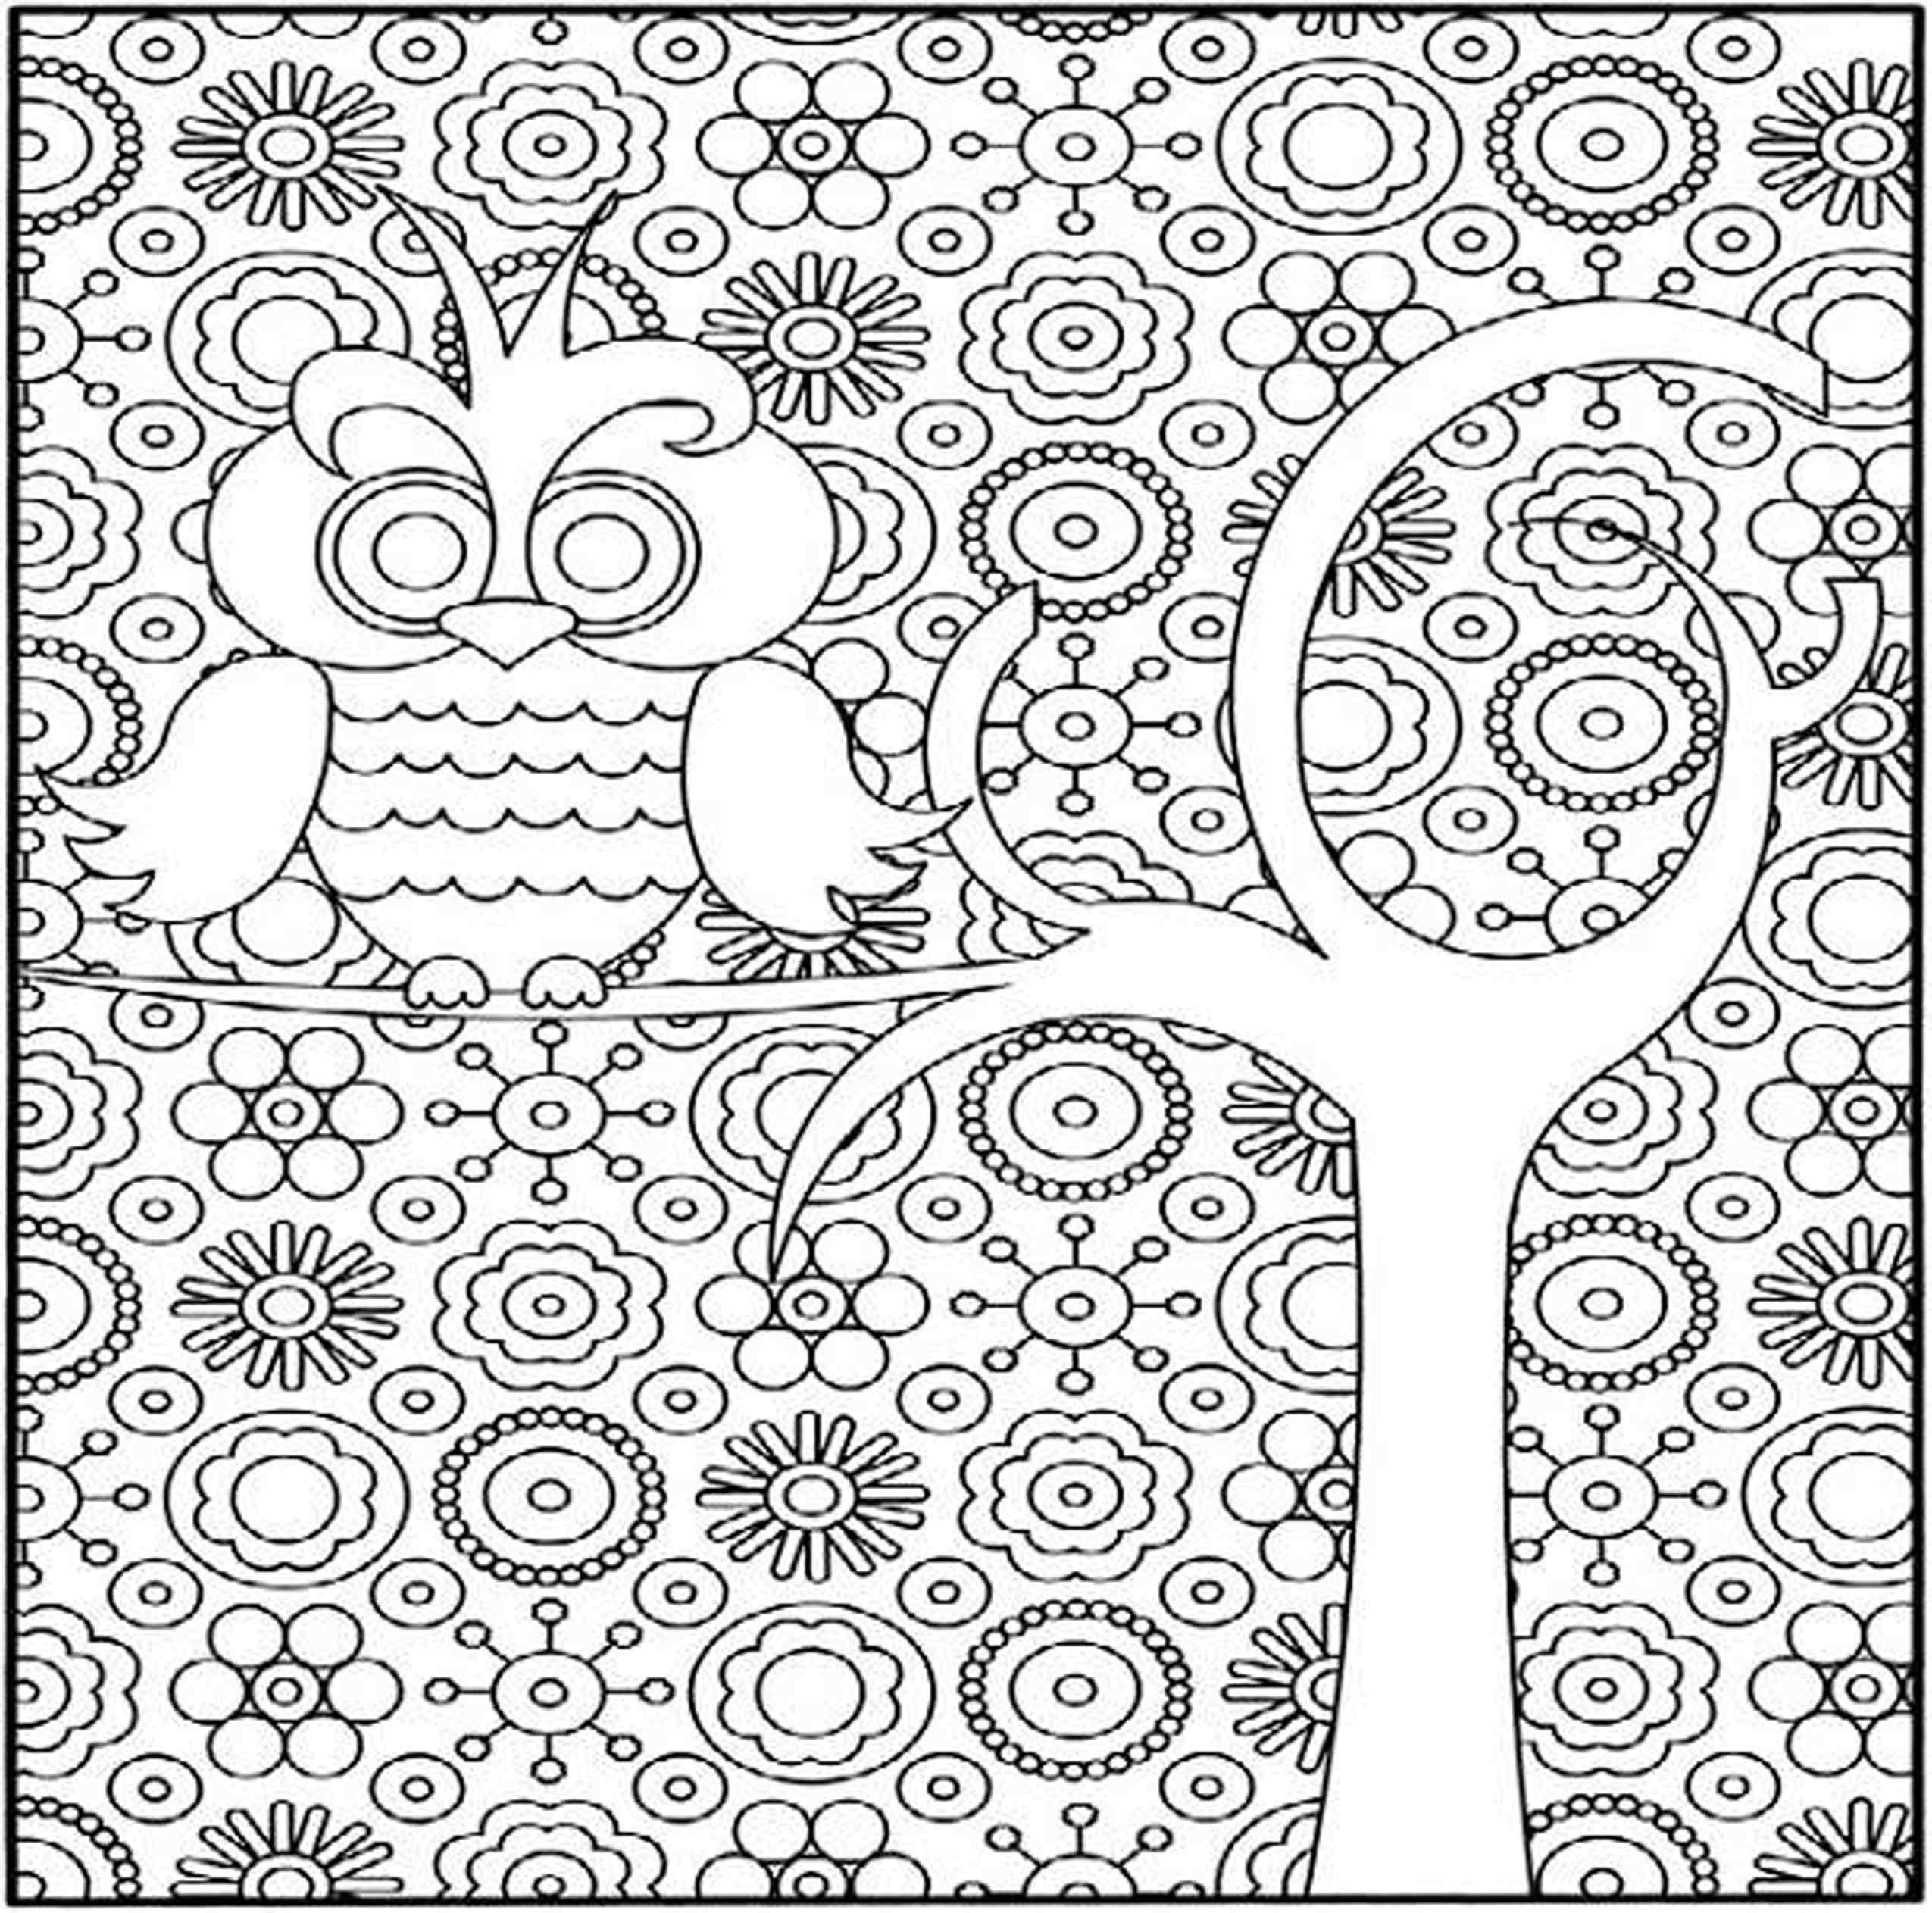 Hard Coloring Pages For Kids 2021 At Coloring Pages Blog Movieclips Com